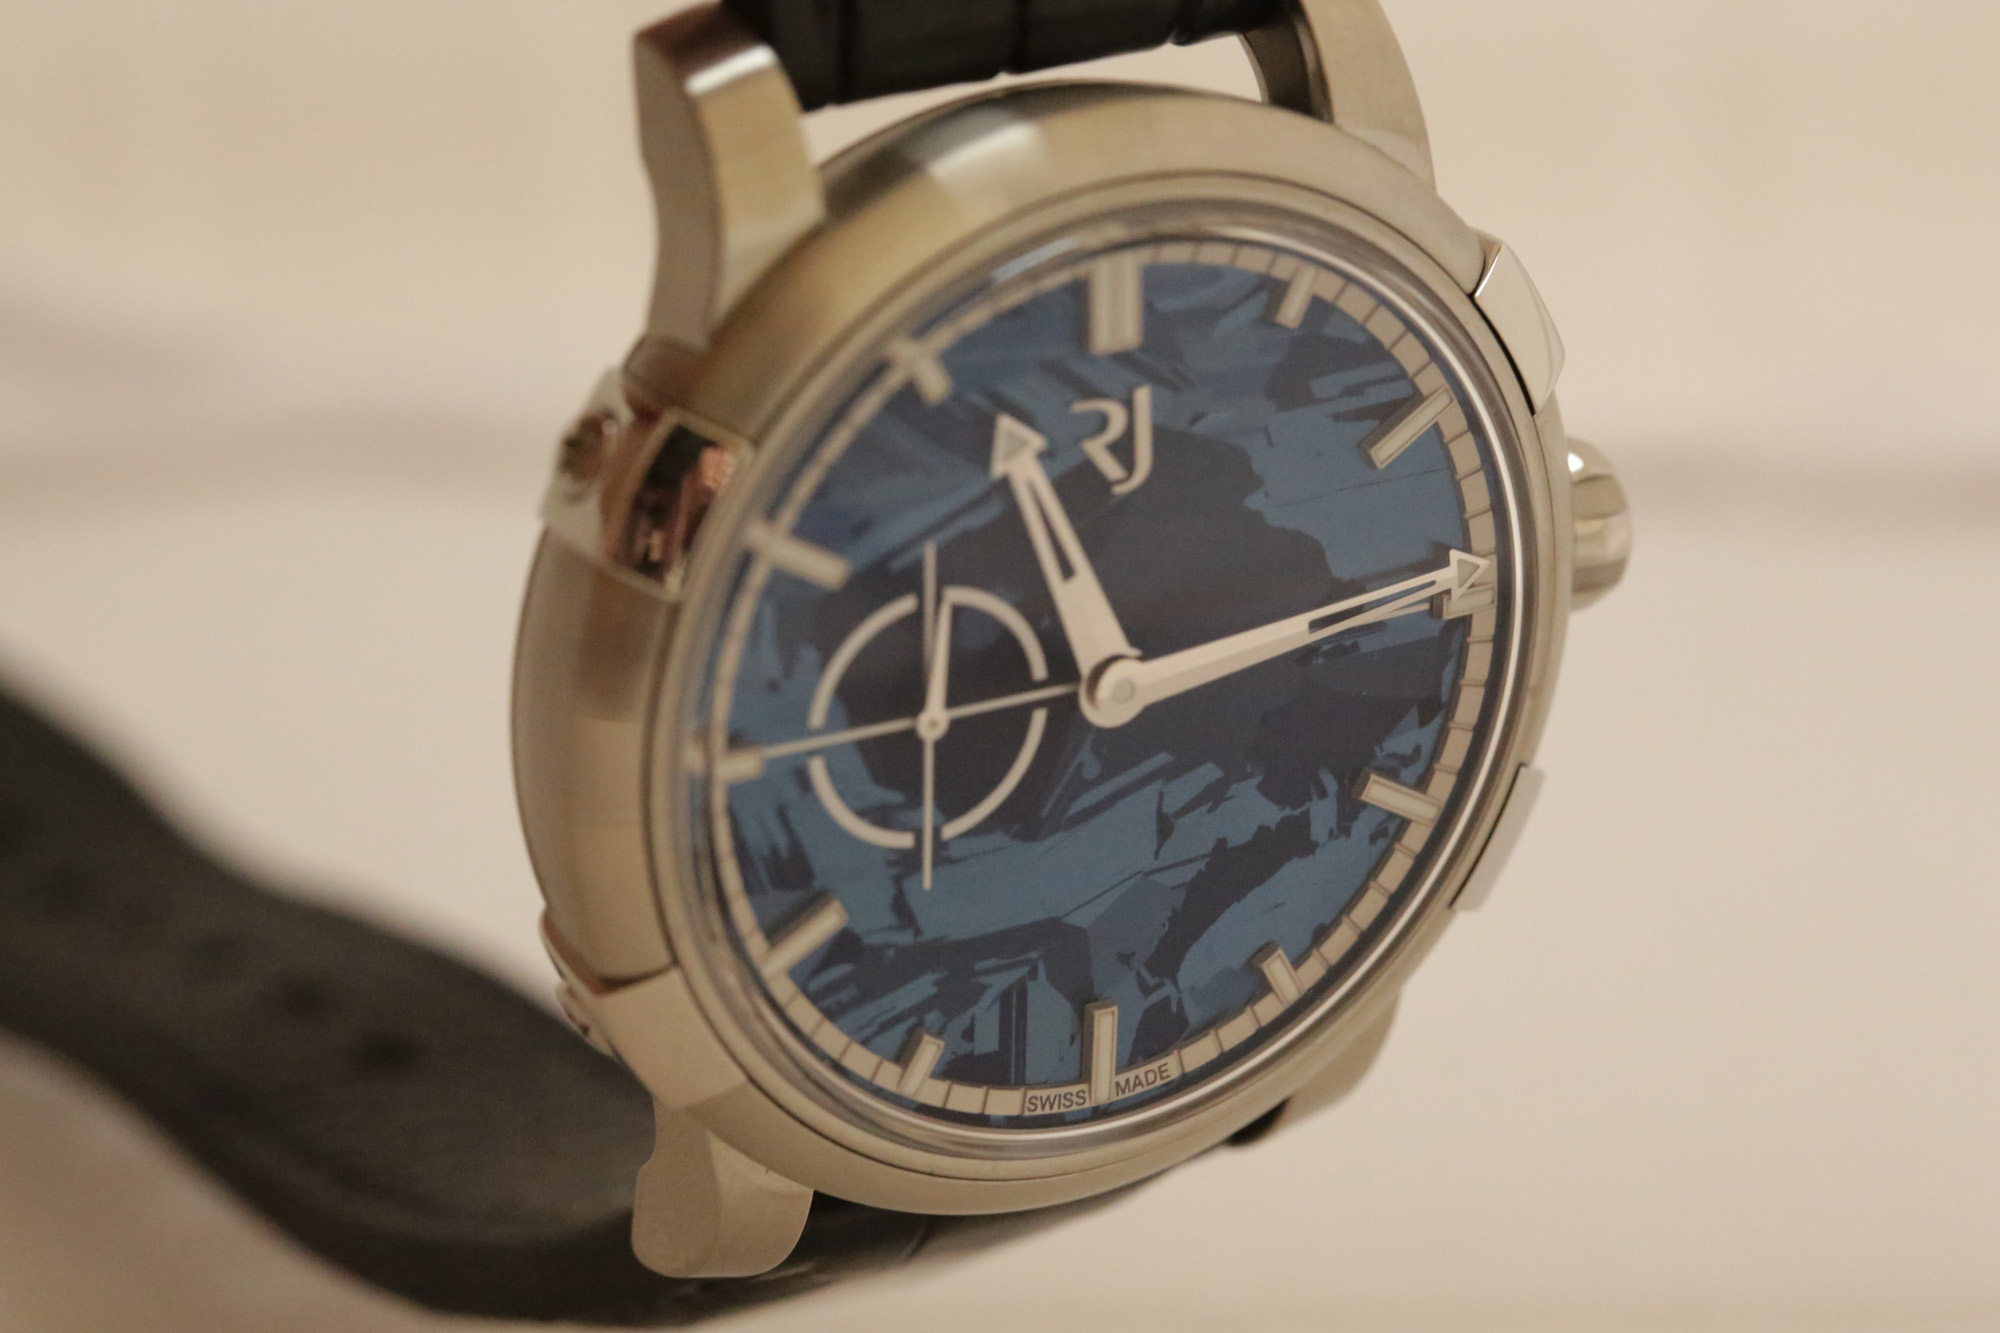 RJ-Romain Jerome 1969 Heavy Metal Blue Silicium - Dial